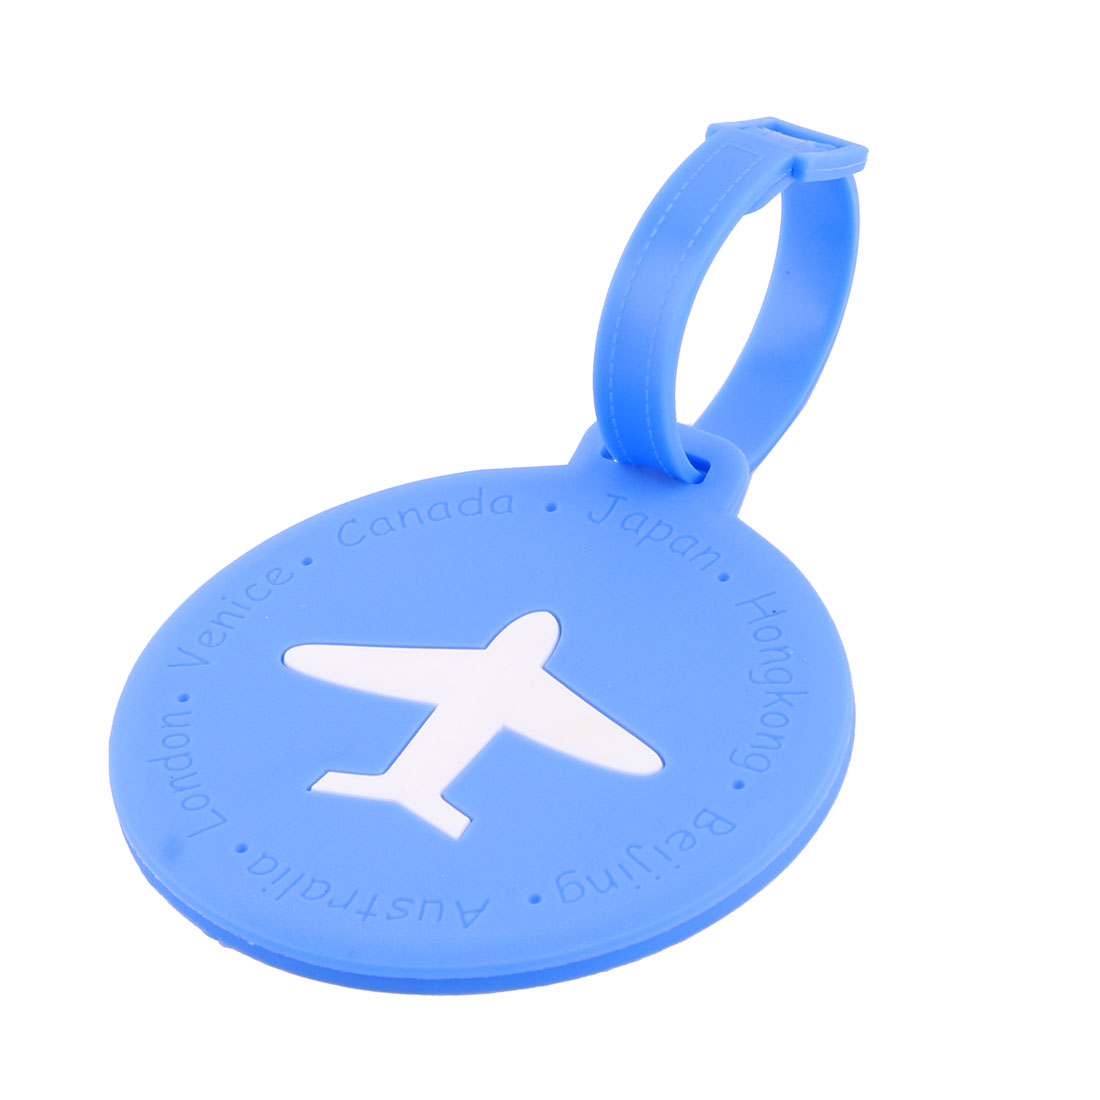 Silicone Round Shape Airplane Travel Suitcase Label Luggage Tag Name Address Card Holder Blue